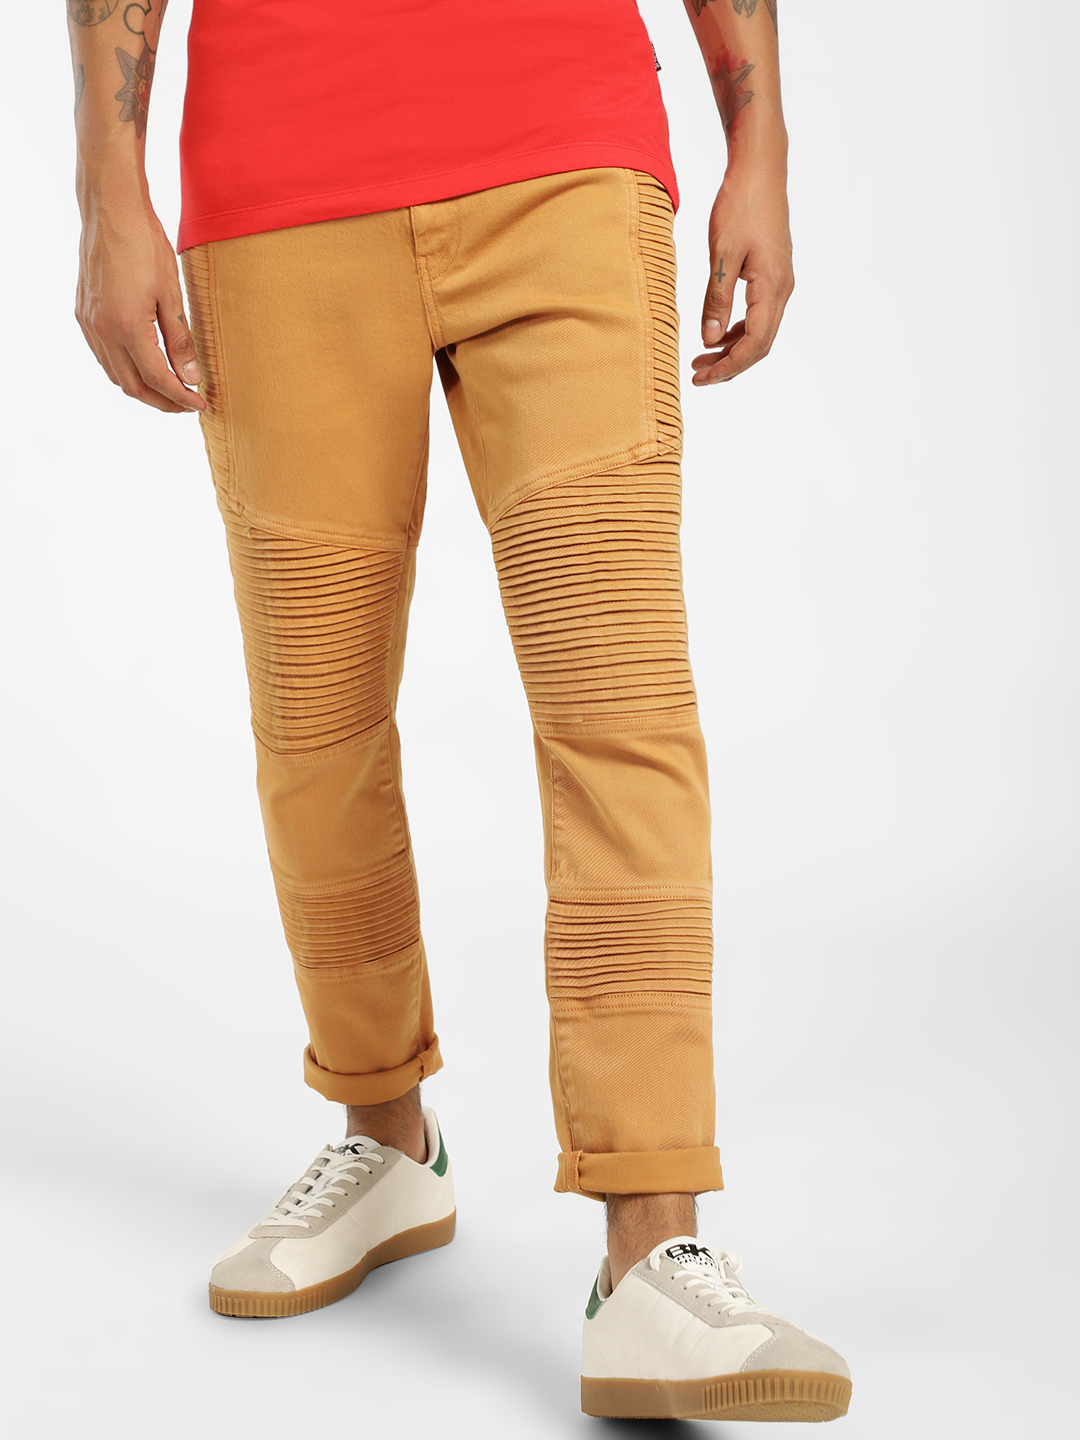 Blue Saint Yellow Overdyed Biker Panel Chinos 1